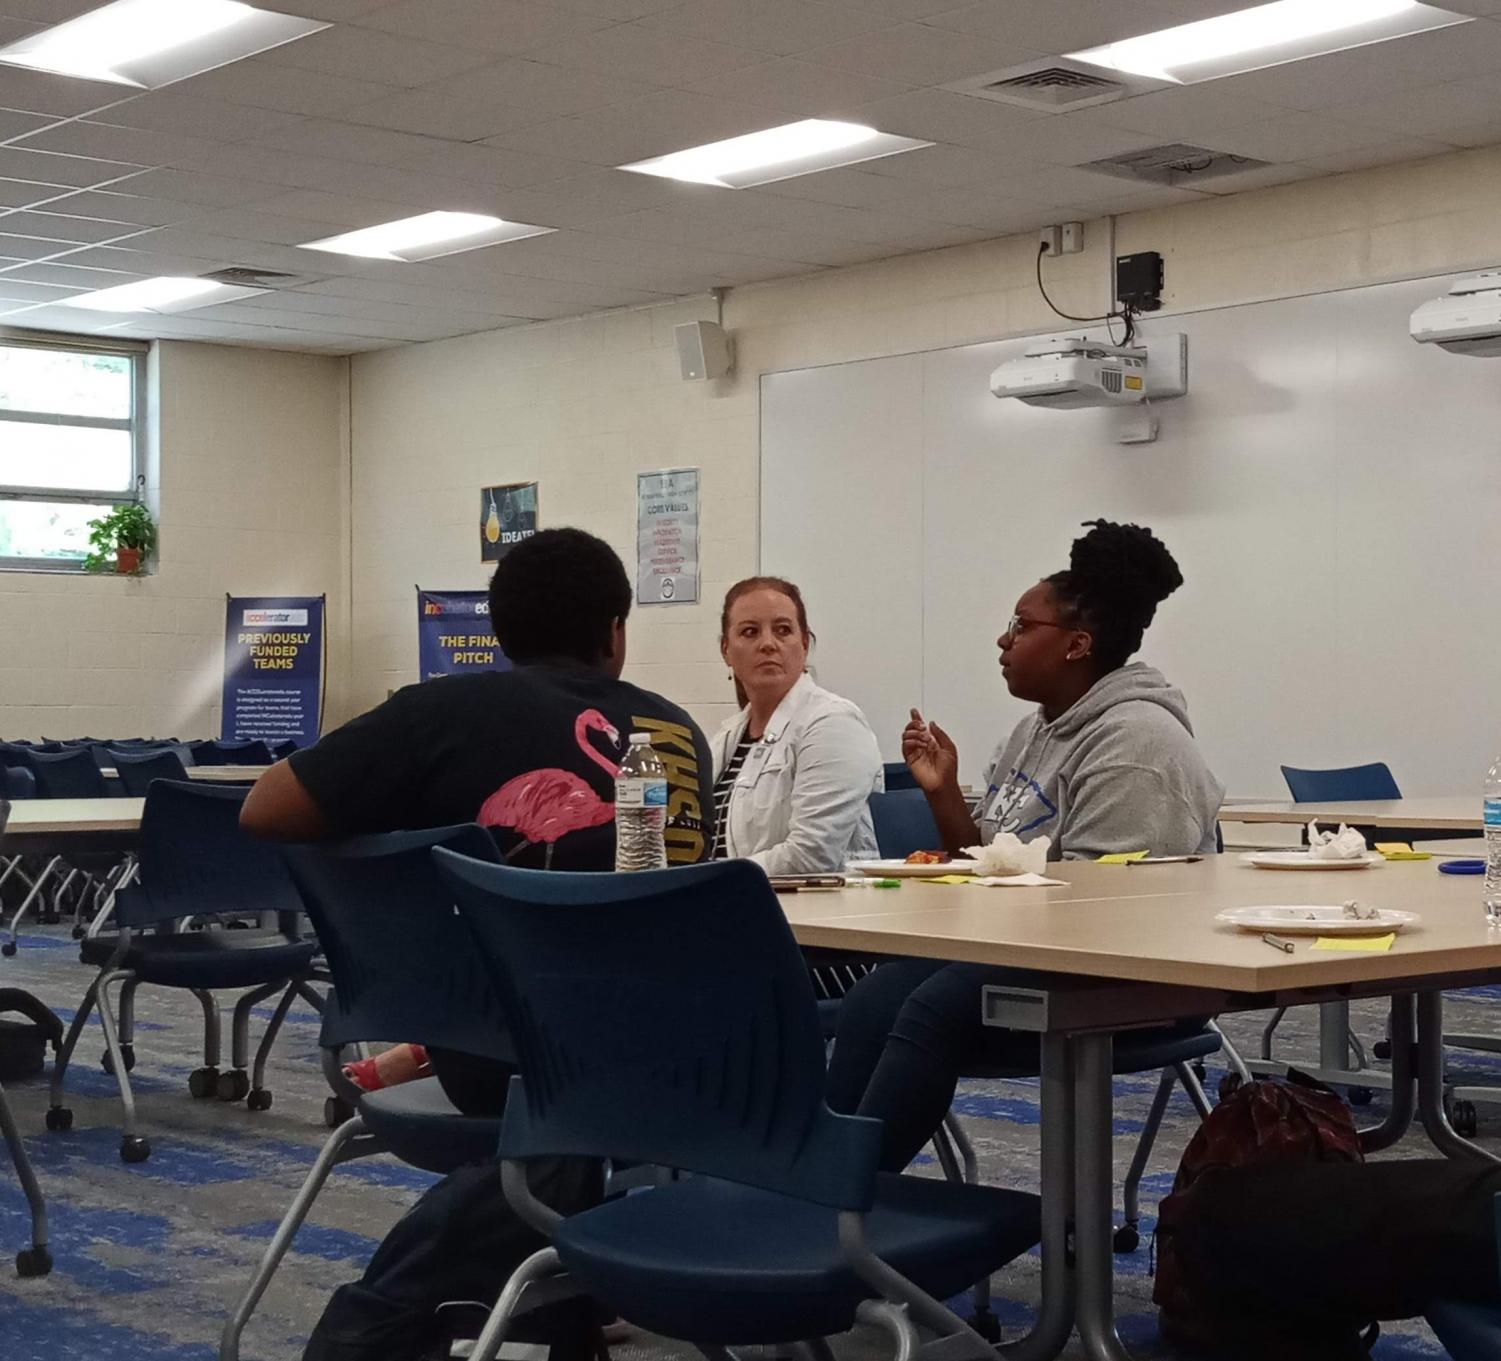 N'Kosi-Sanai Poole (left), Principal Melissa George (center), and Jada Jones (right) talk about school spirit and Monday Morning Meetings in the EBA space on October 3 during lunch.